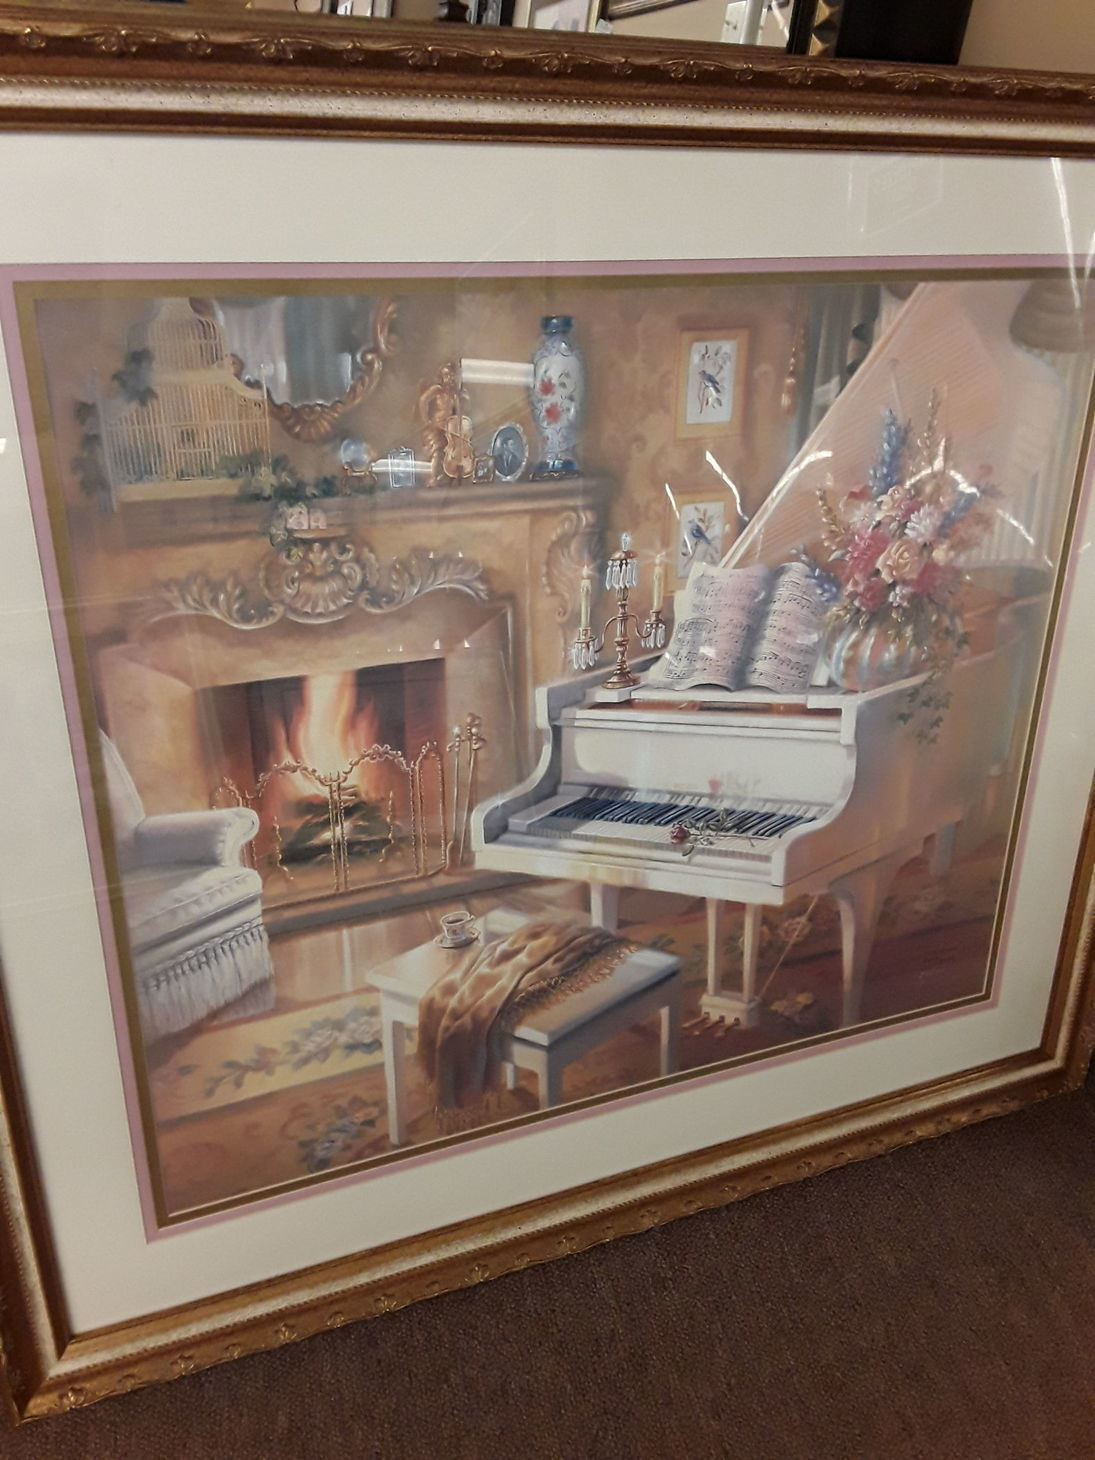 Medium piano by the fireplace